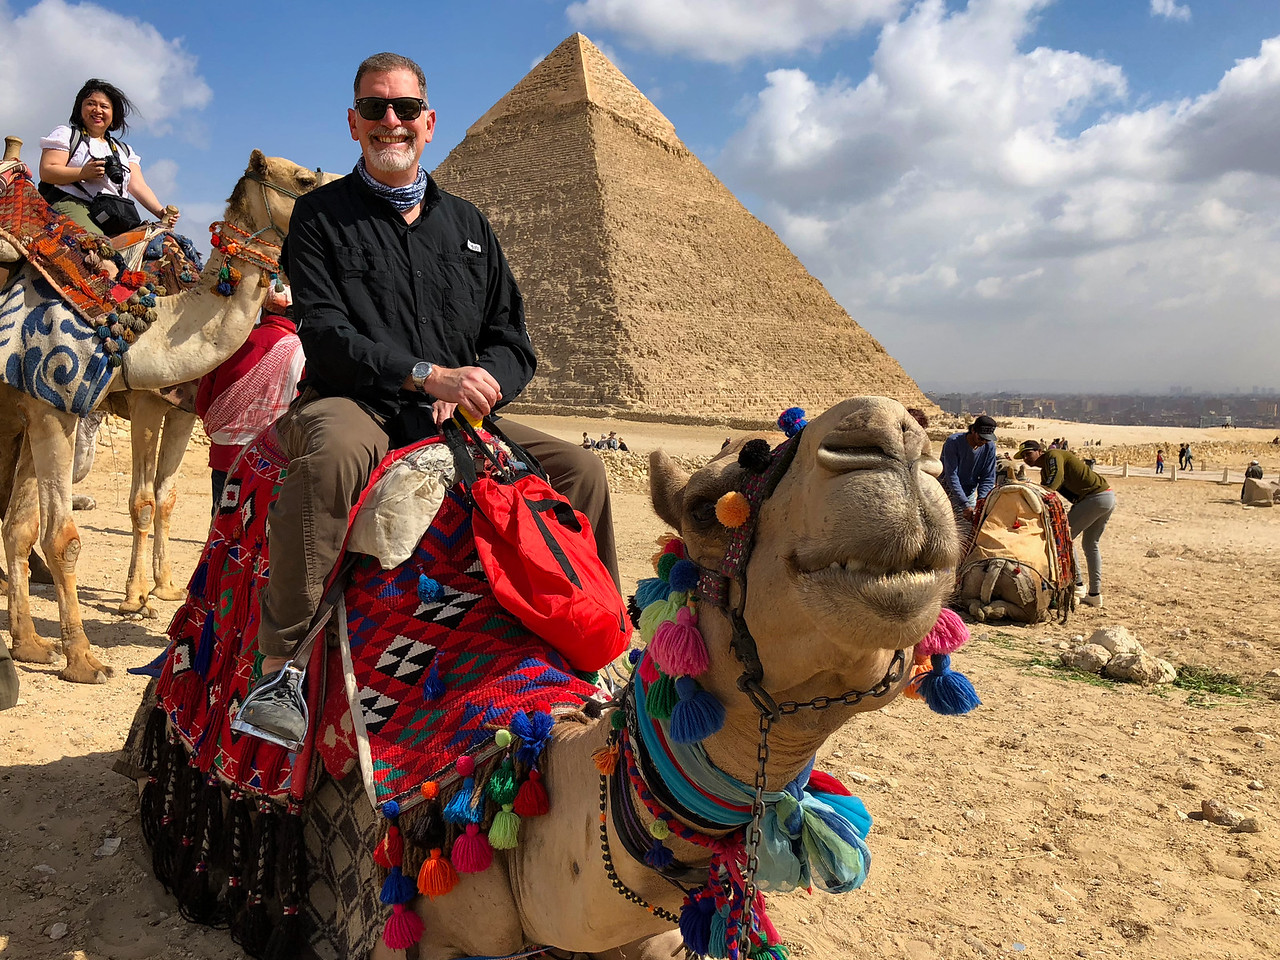 Riding a Camel in at the Pyramids of Giza